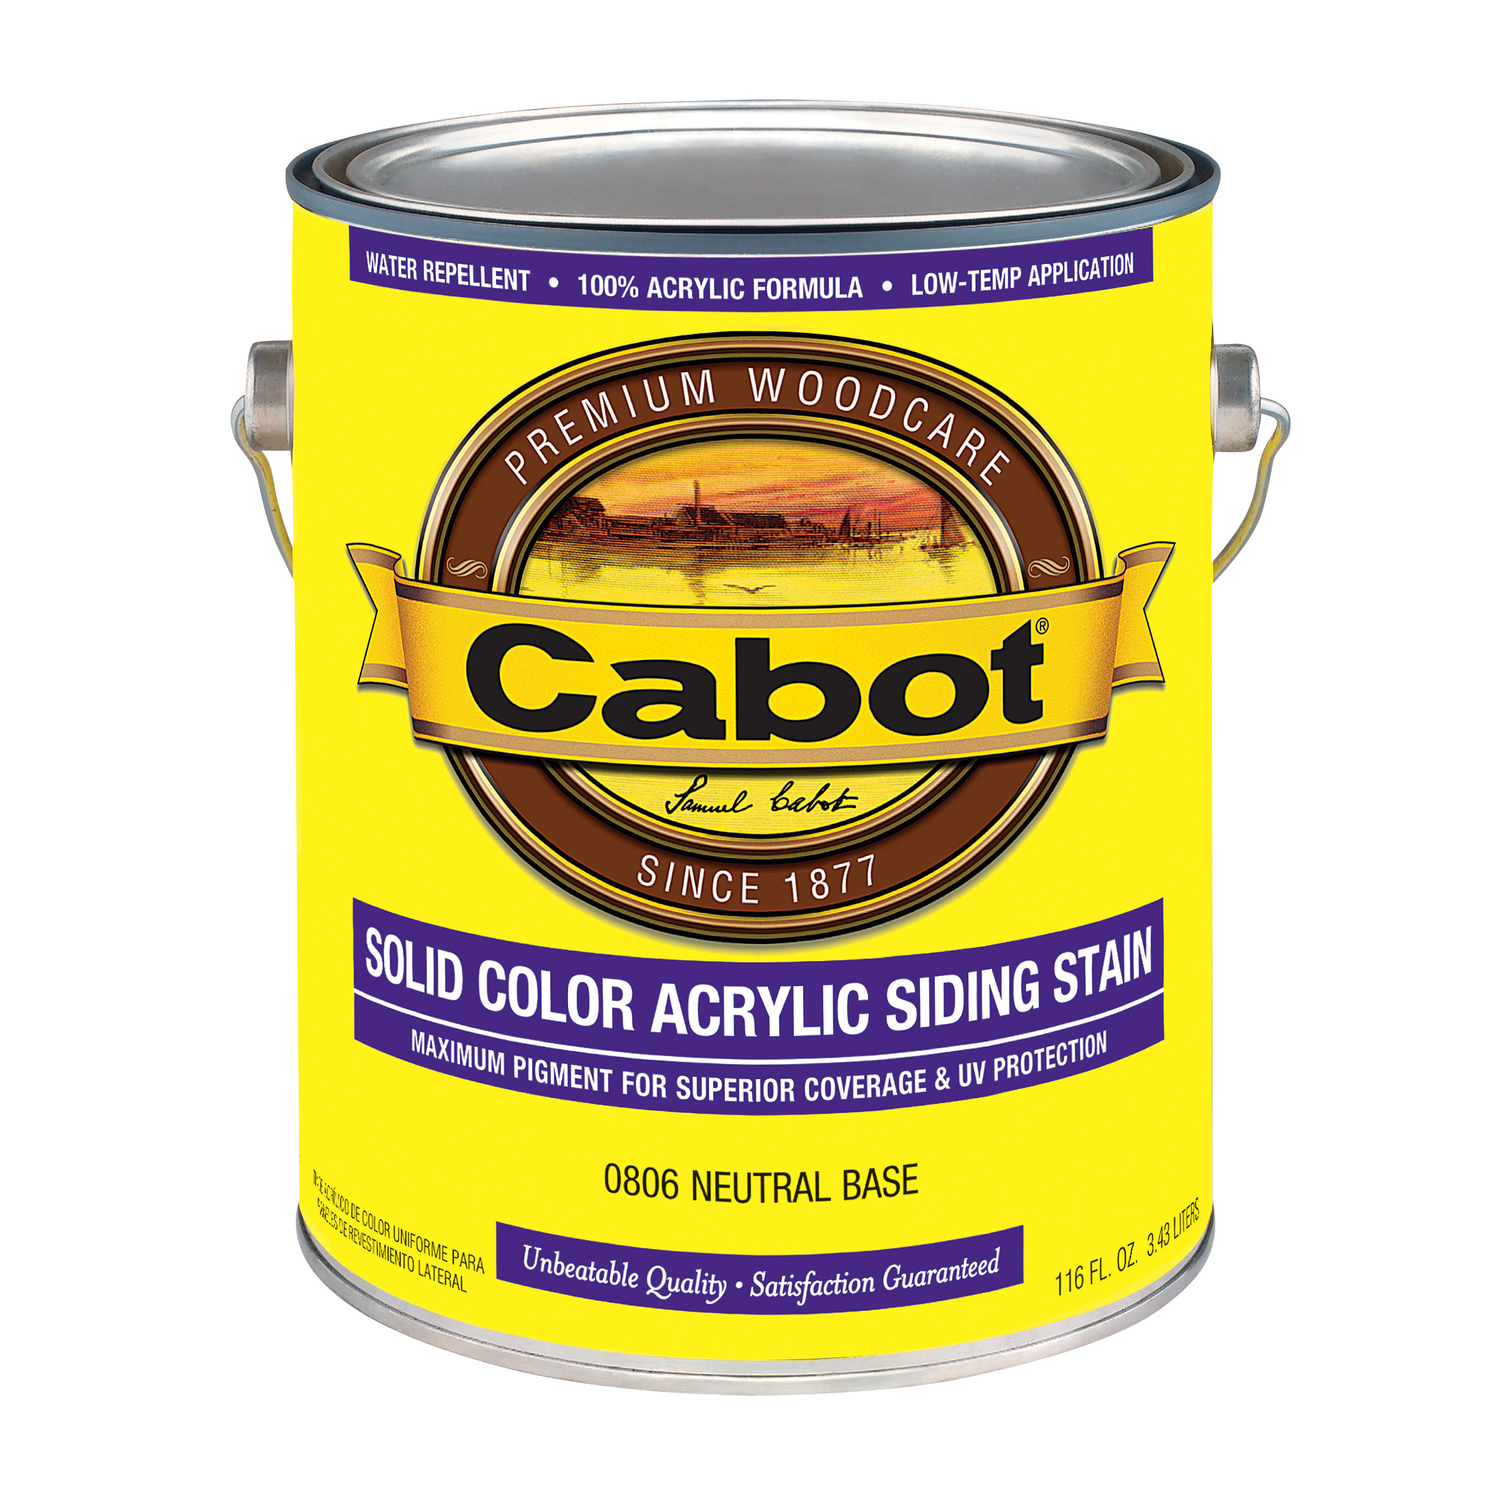 Cabot  Solid  Tintable Neutral Base  Water-Based  Acrylic  Solid Color Acrylic Deck Stain  1 gal.